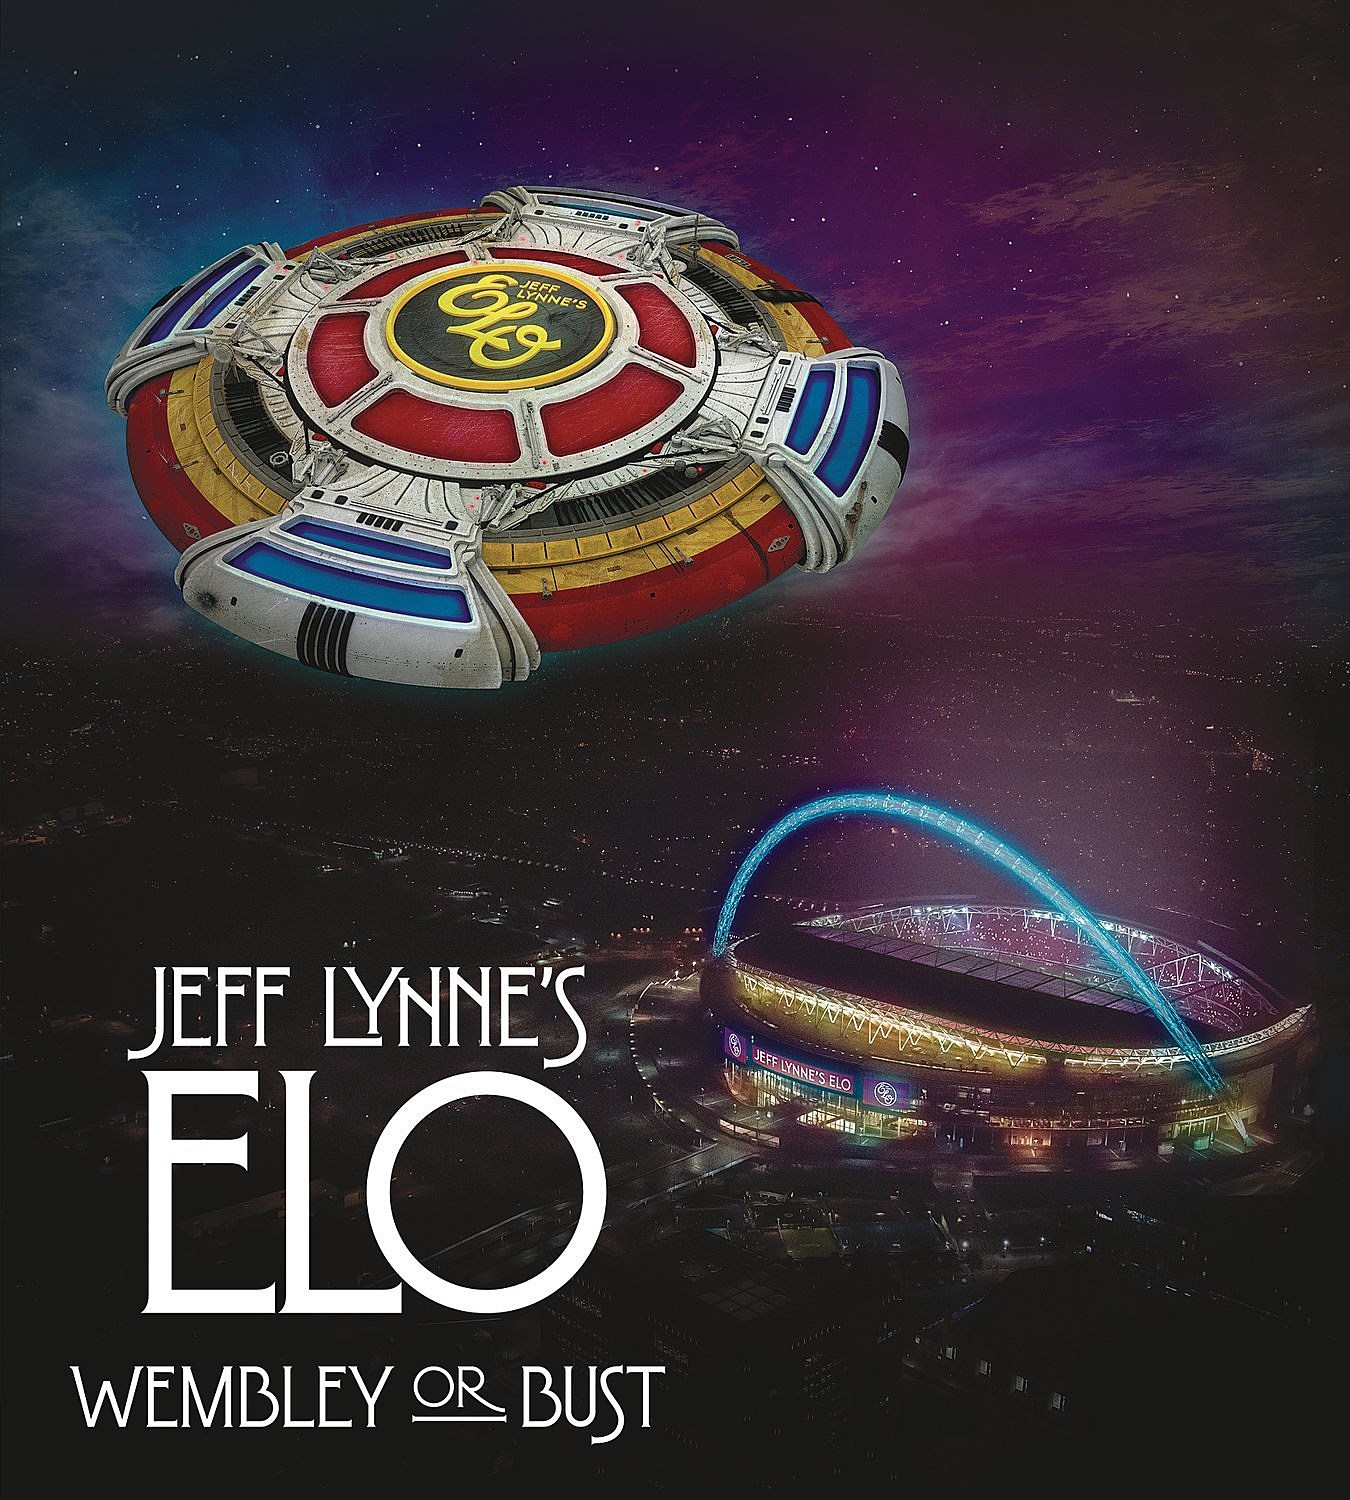 Jeff Lynne's ELO Sets First US Tour in Over 35 Years